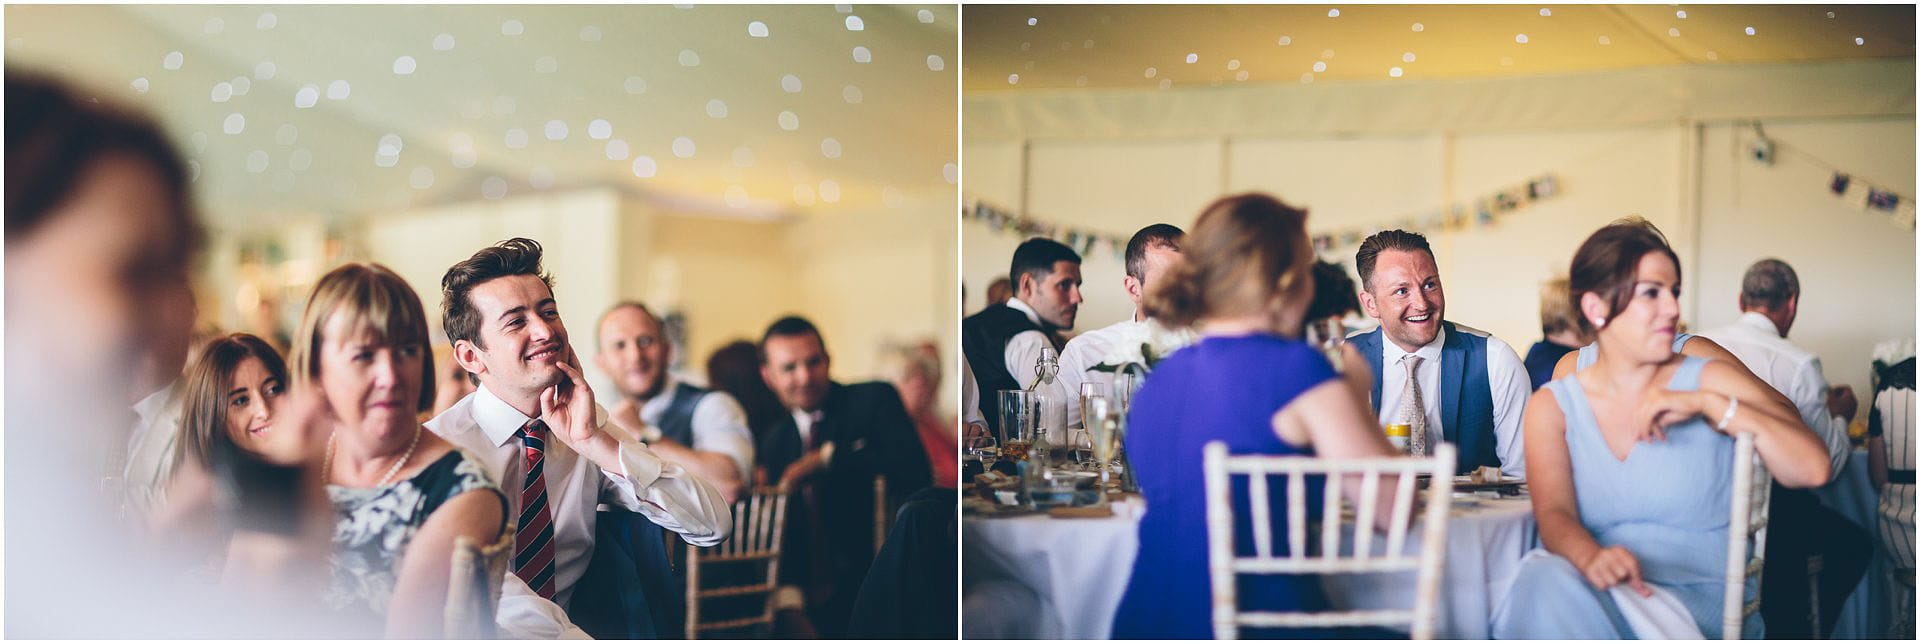 Combermere_Abbey_Wedding_Photography_0119